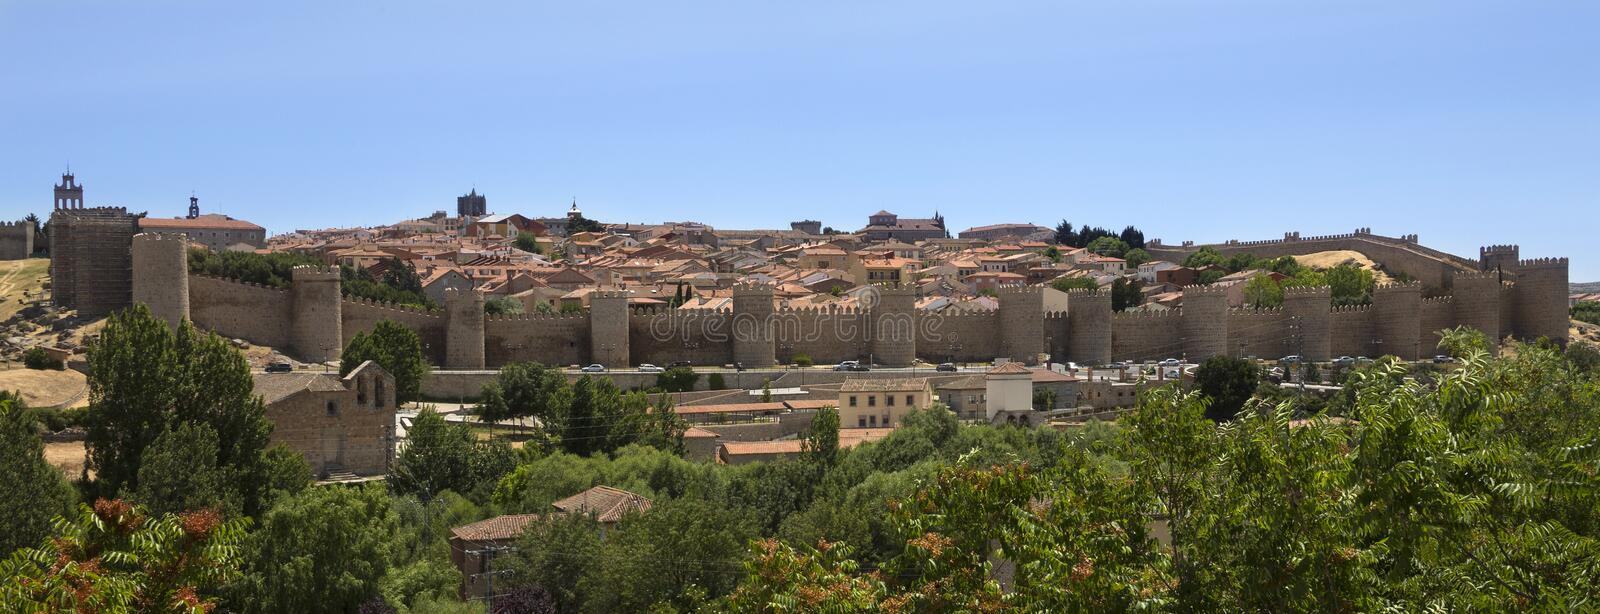 Download Avila Medieval Walled City - Spain Stock Image - Image: 31188961